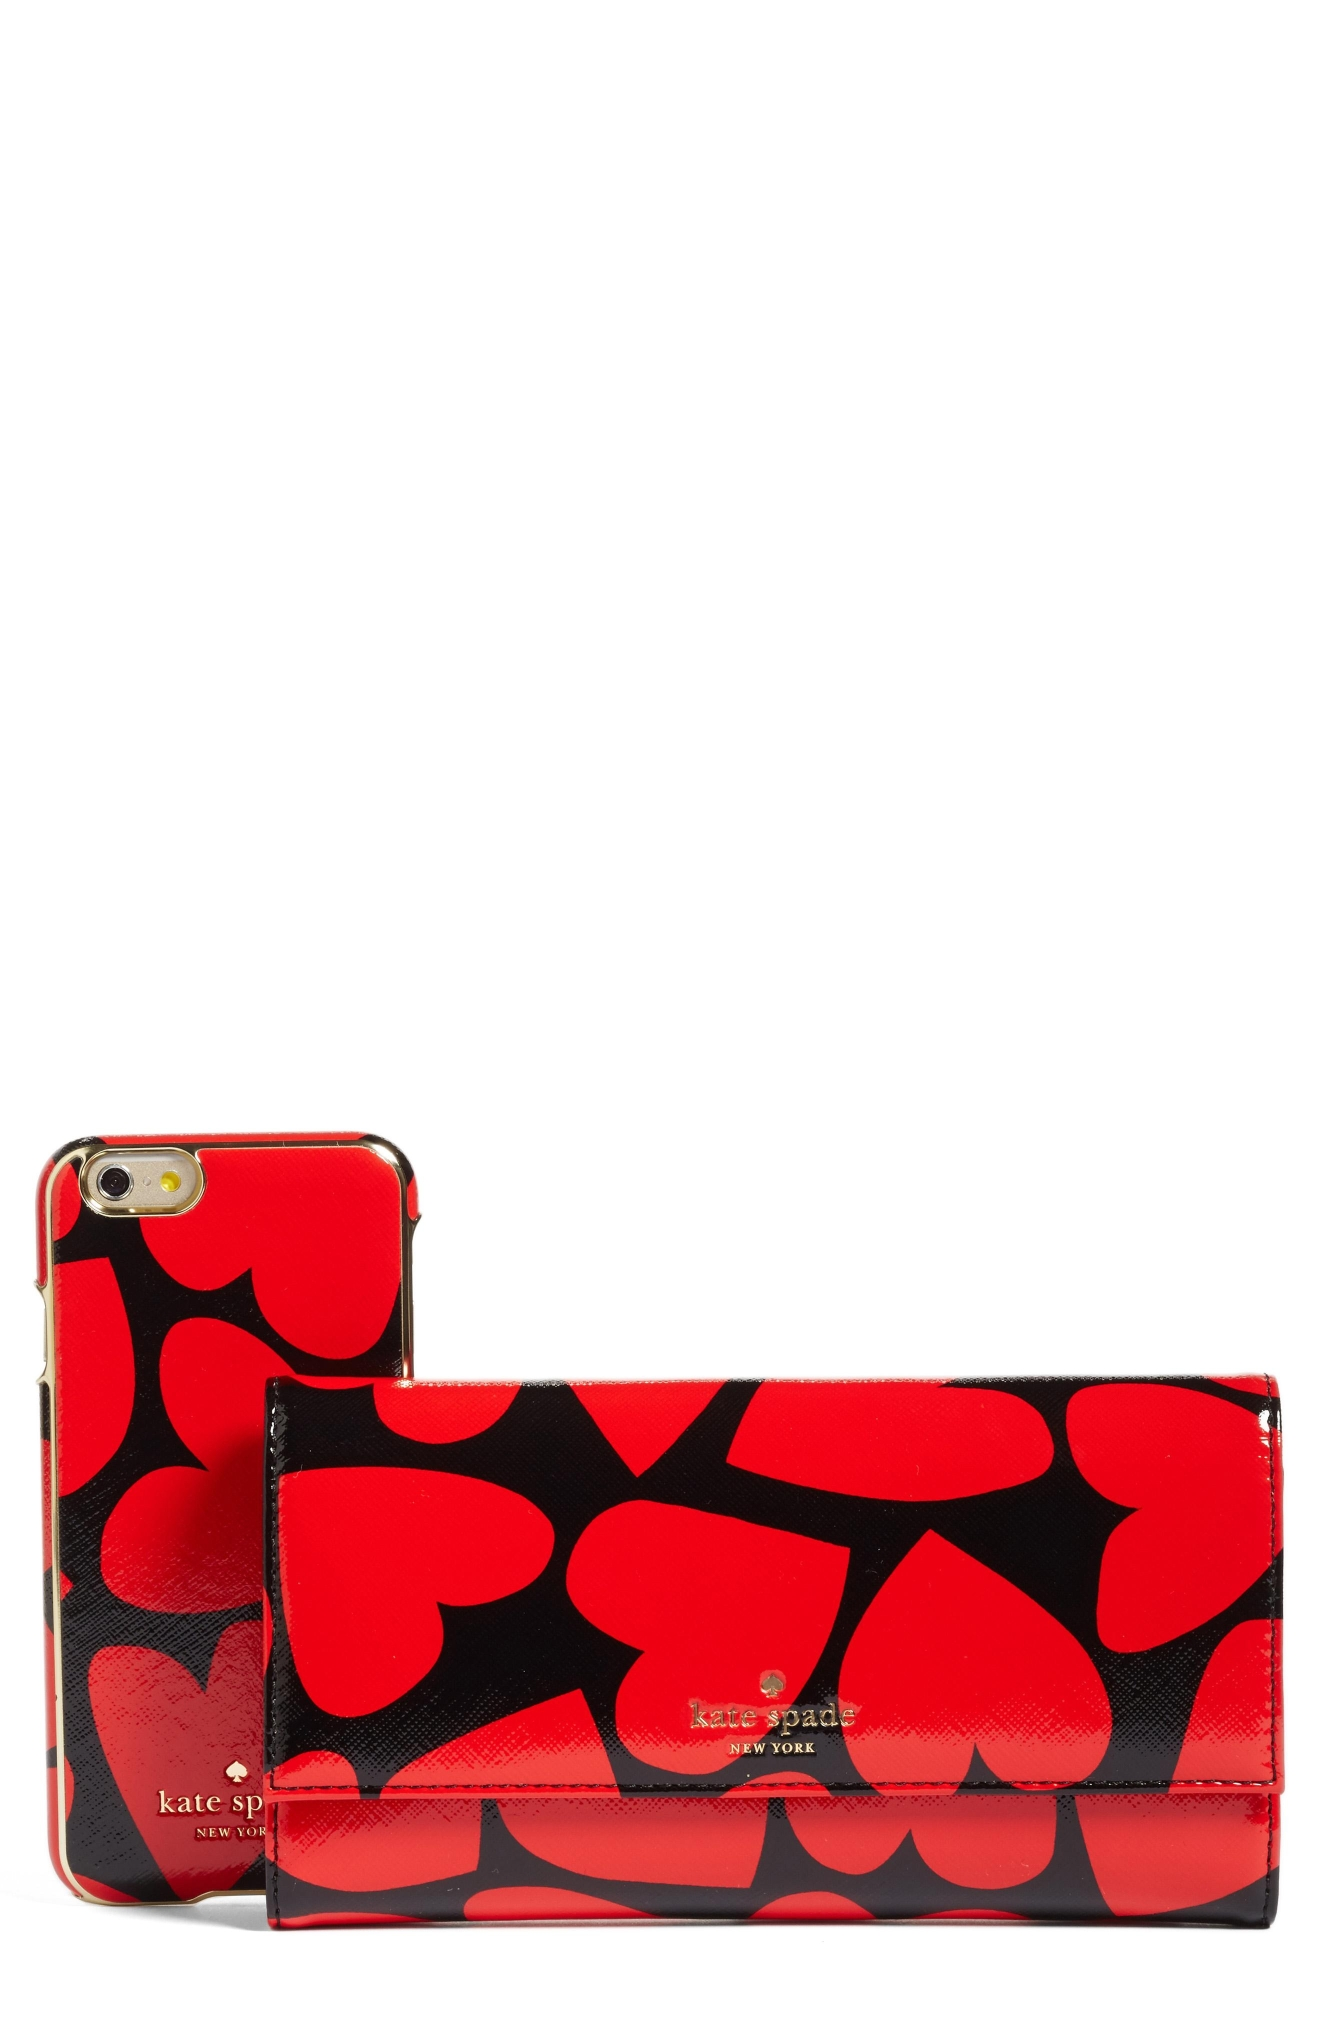 Kate Spade New York Scattered Hearts iPhone 7 leather wallet, $158 (Nordstrom)